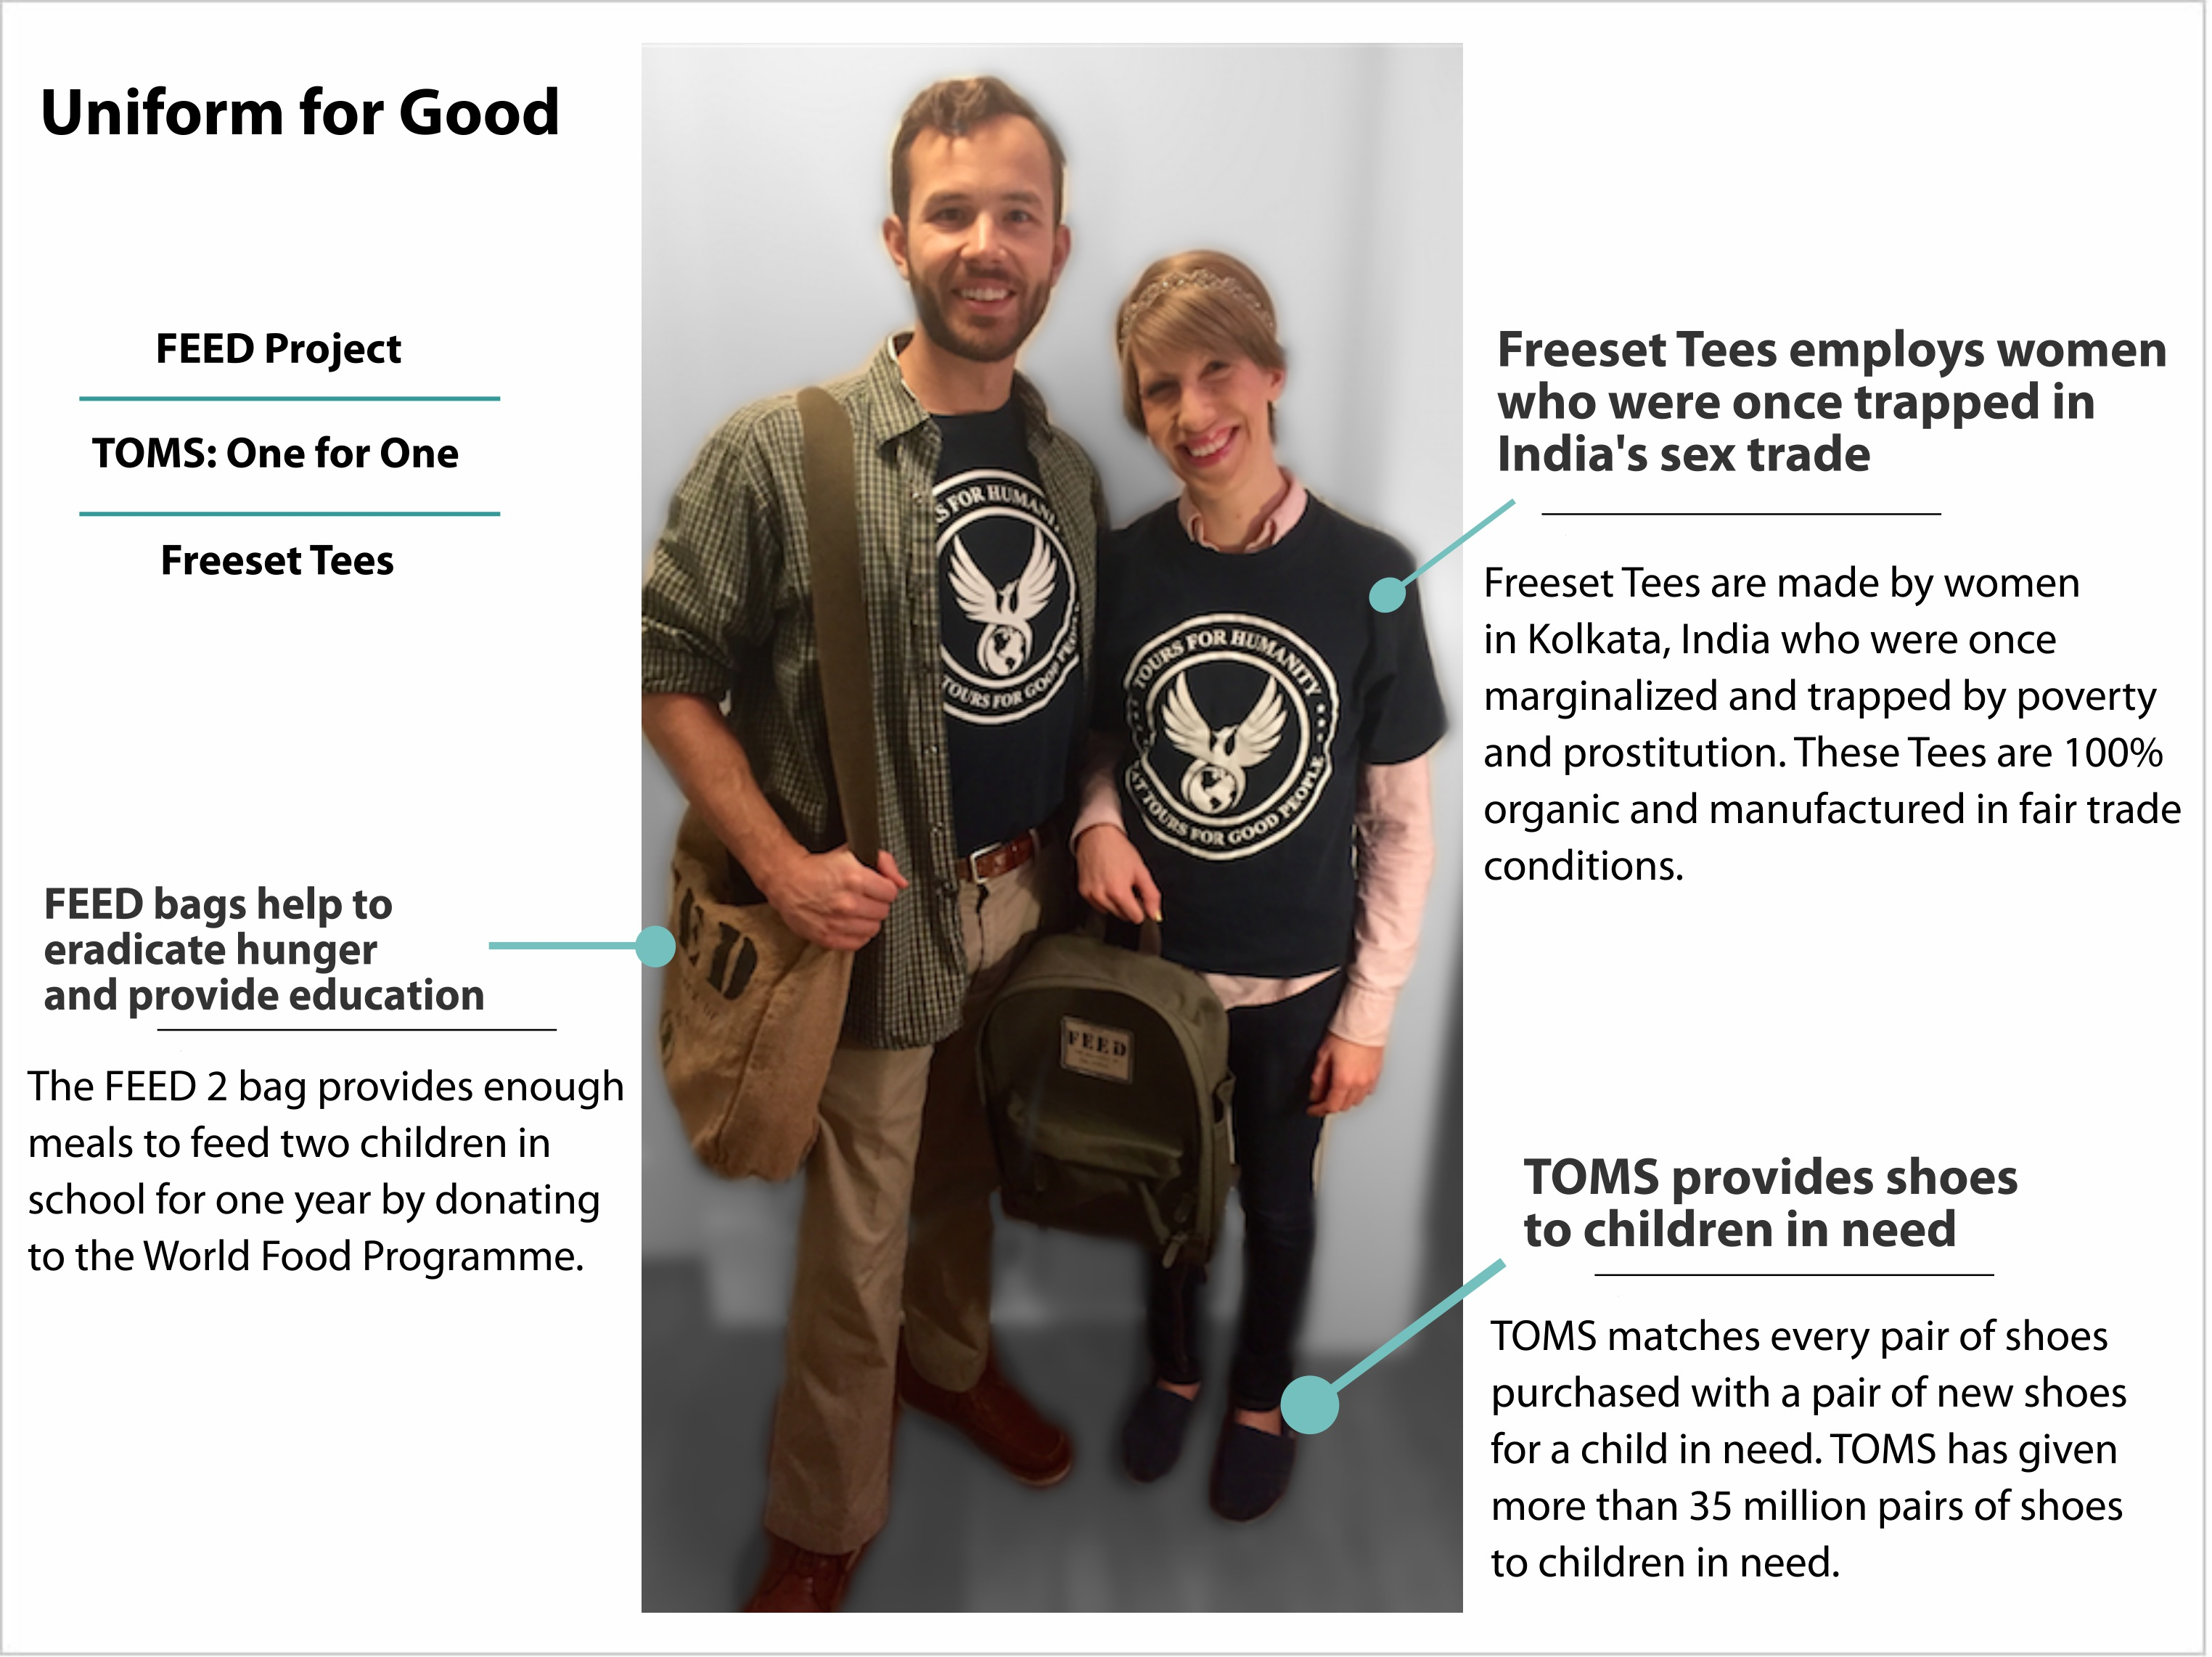 20150116081841-UniformforGood-9